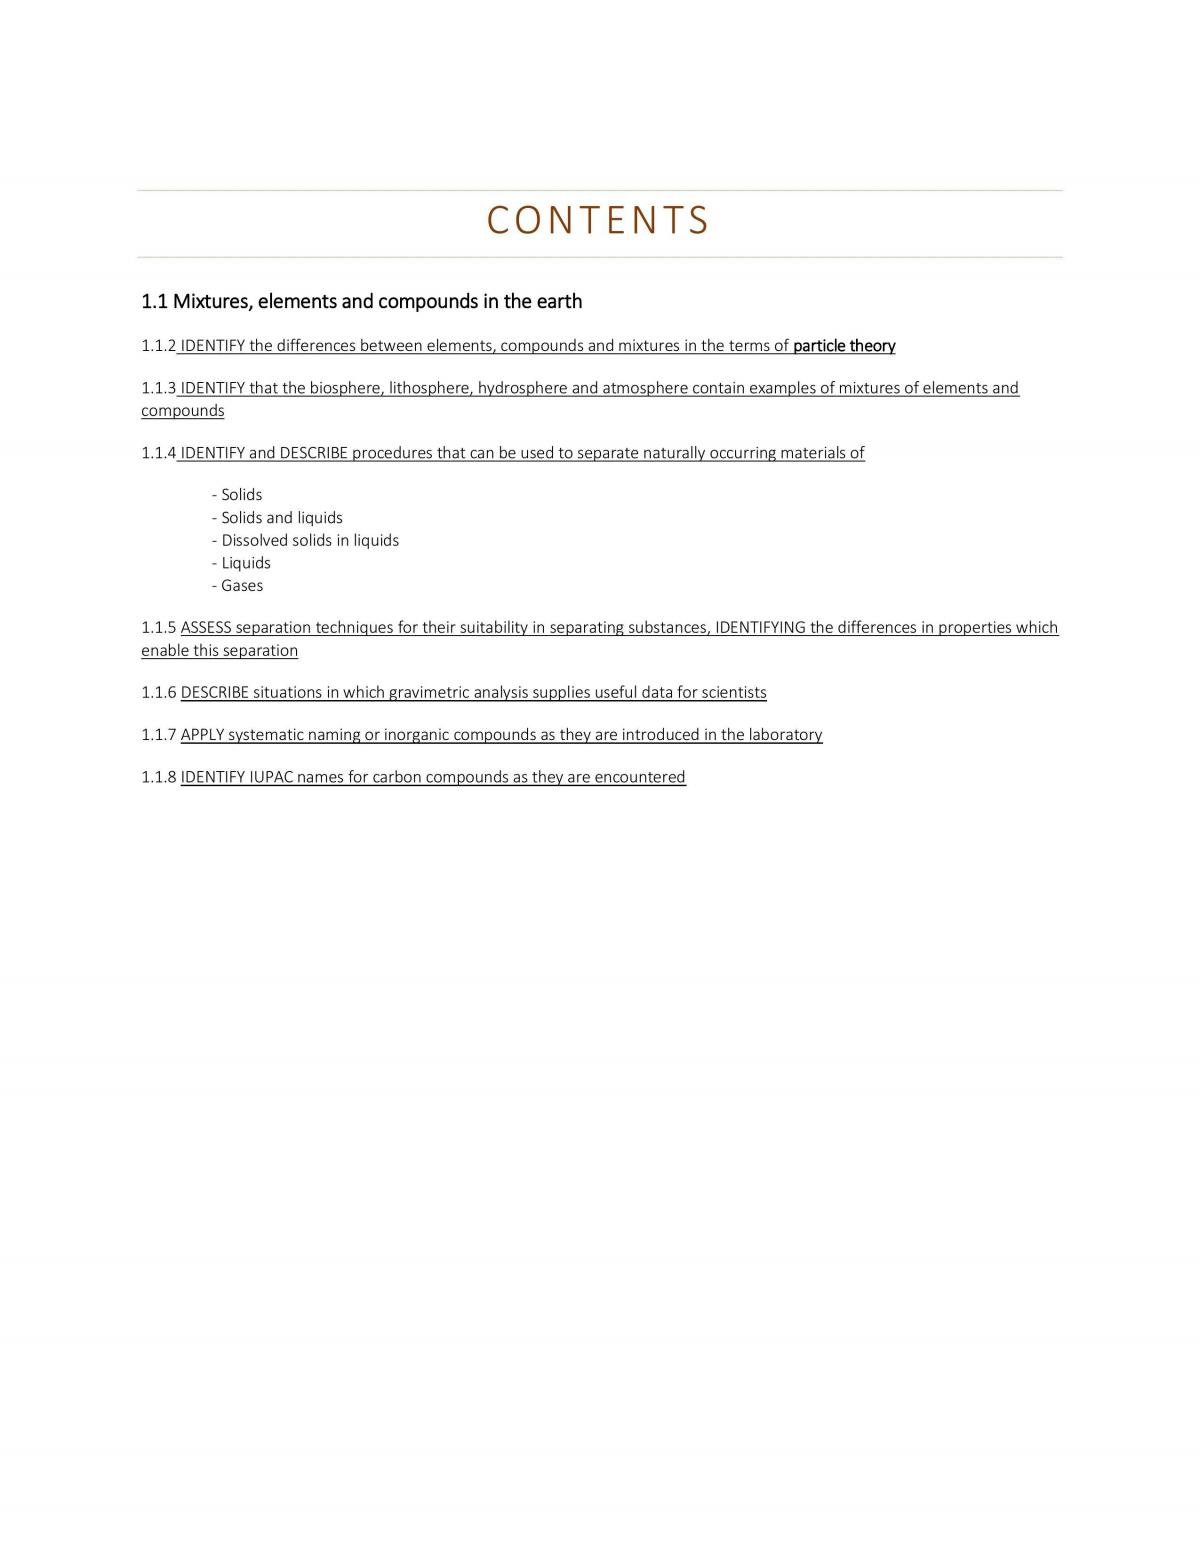 Module 1 - The Chemical Earth Syllabus Notes - Page 1